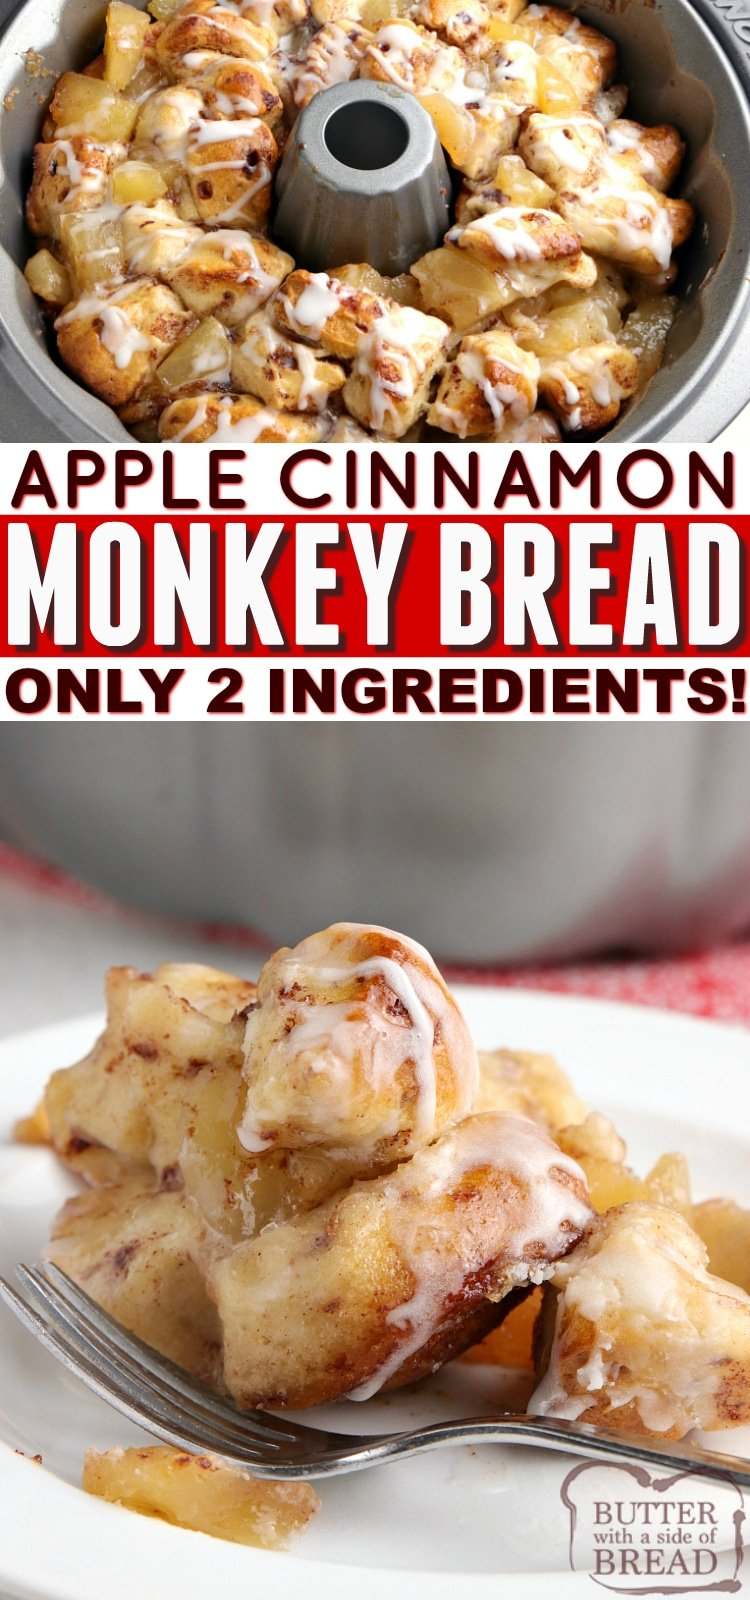 Apple Cinnamon Monkey Bread made with apple pie filling and canned cinnamon rolls. Only two ingredients for delicious cinnamon rolls with lots of apple flavor!